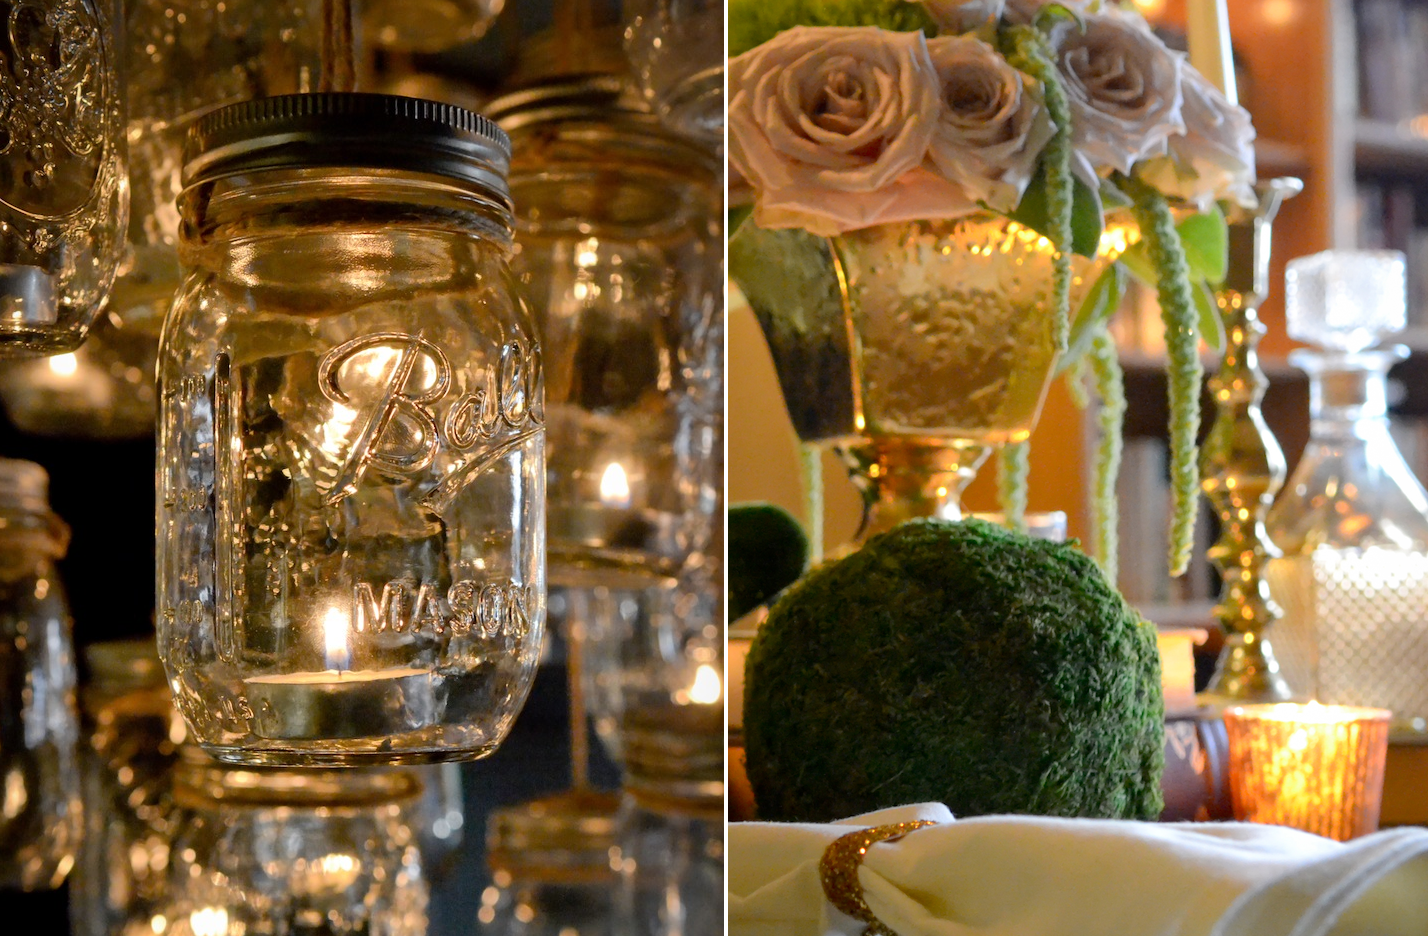 Elegant-vintage-wedding-inspiration-candlelit-wedding-venue-mason-jar-chandelier-3.original